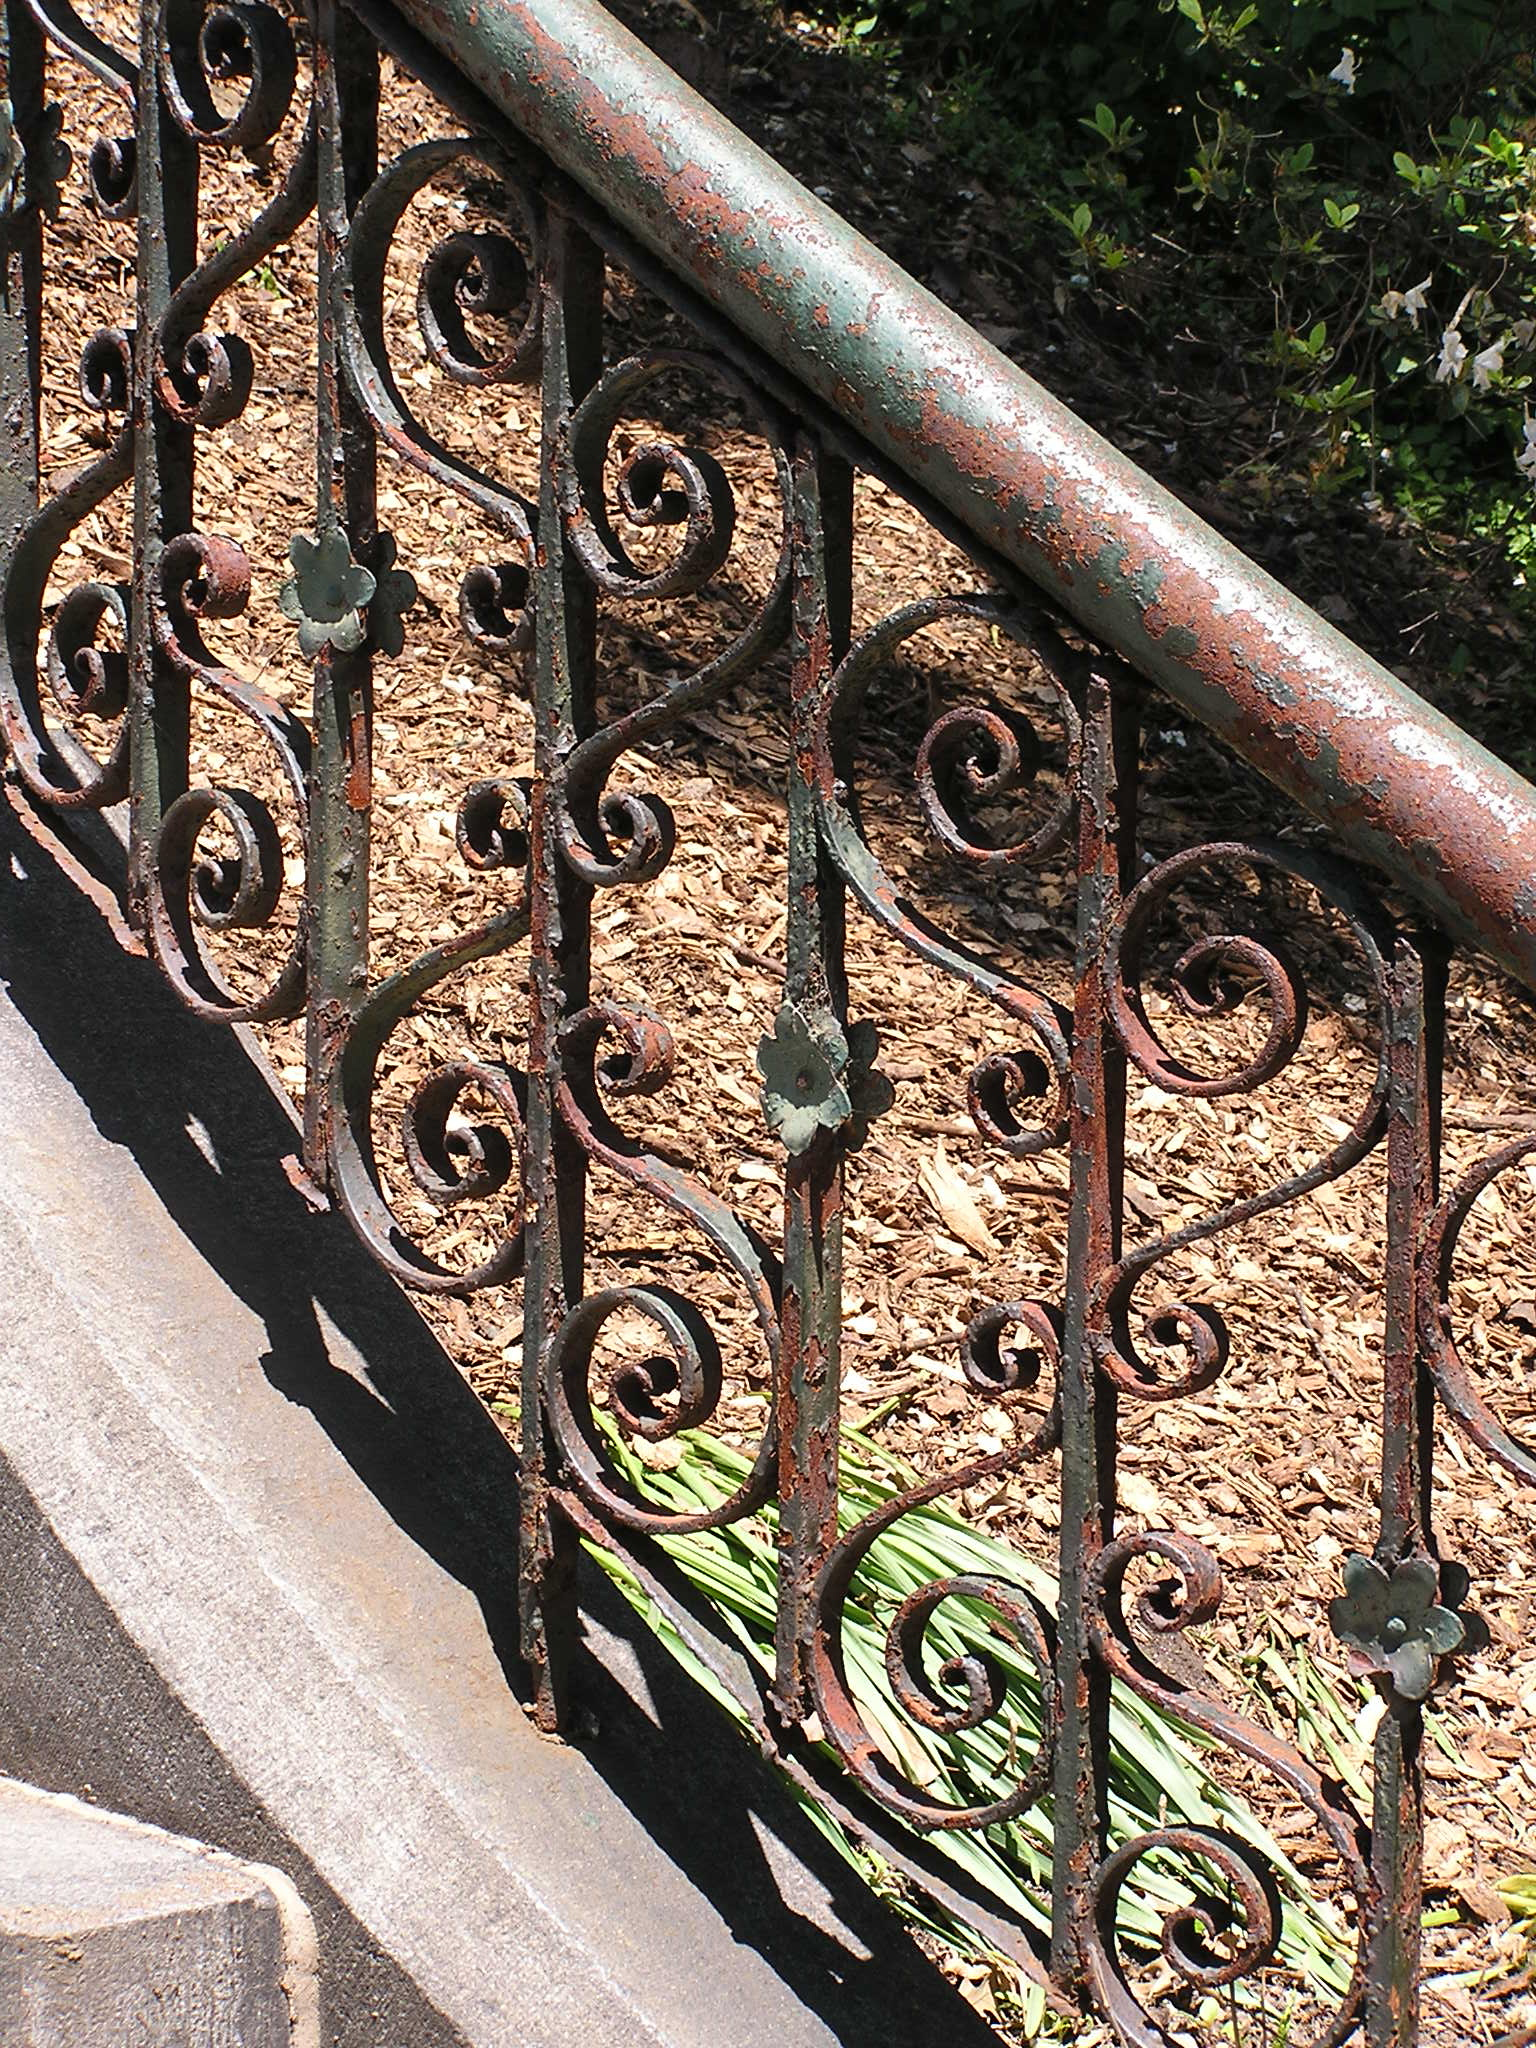 Dissolve Rust Iron a Rusted Iron Railing That 39 s